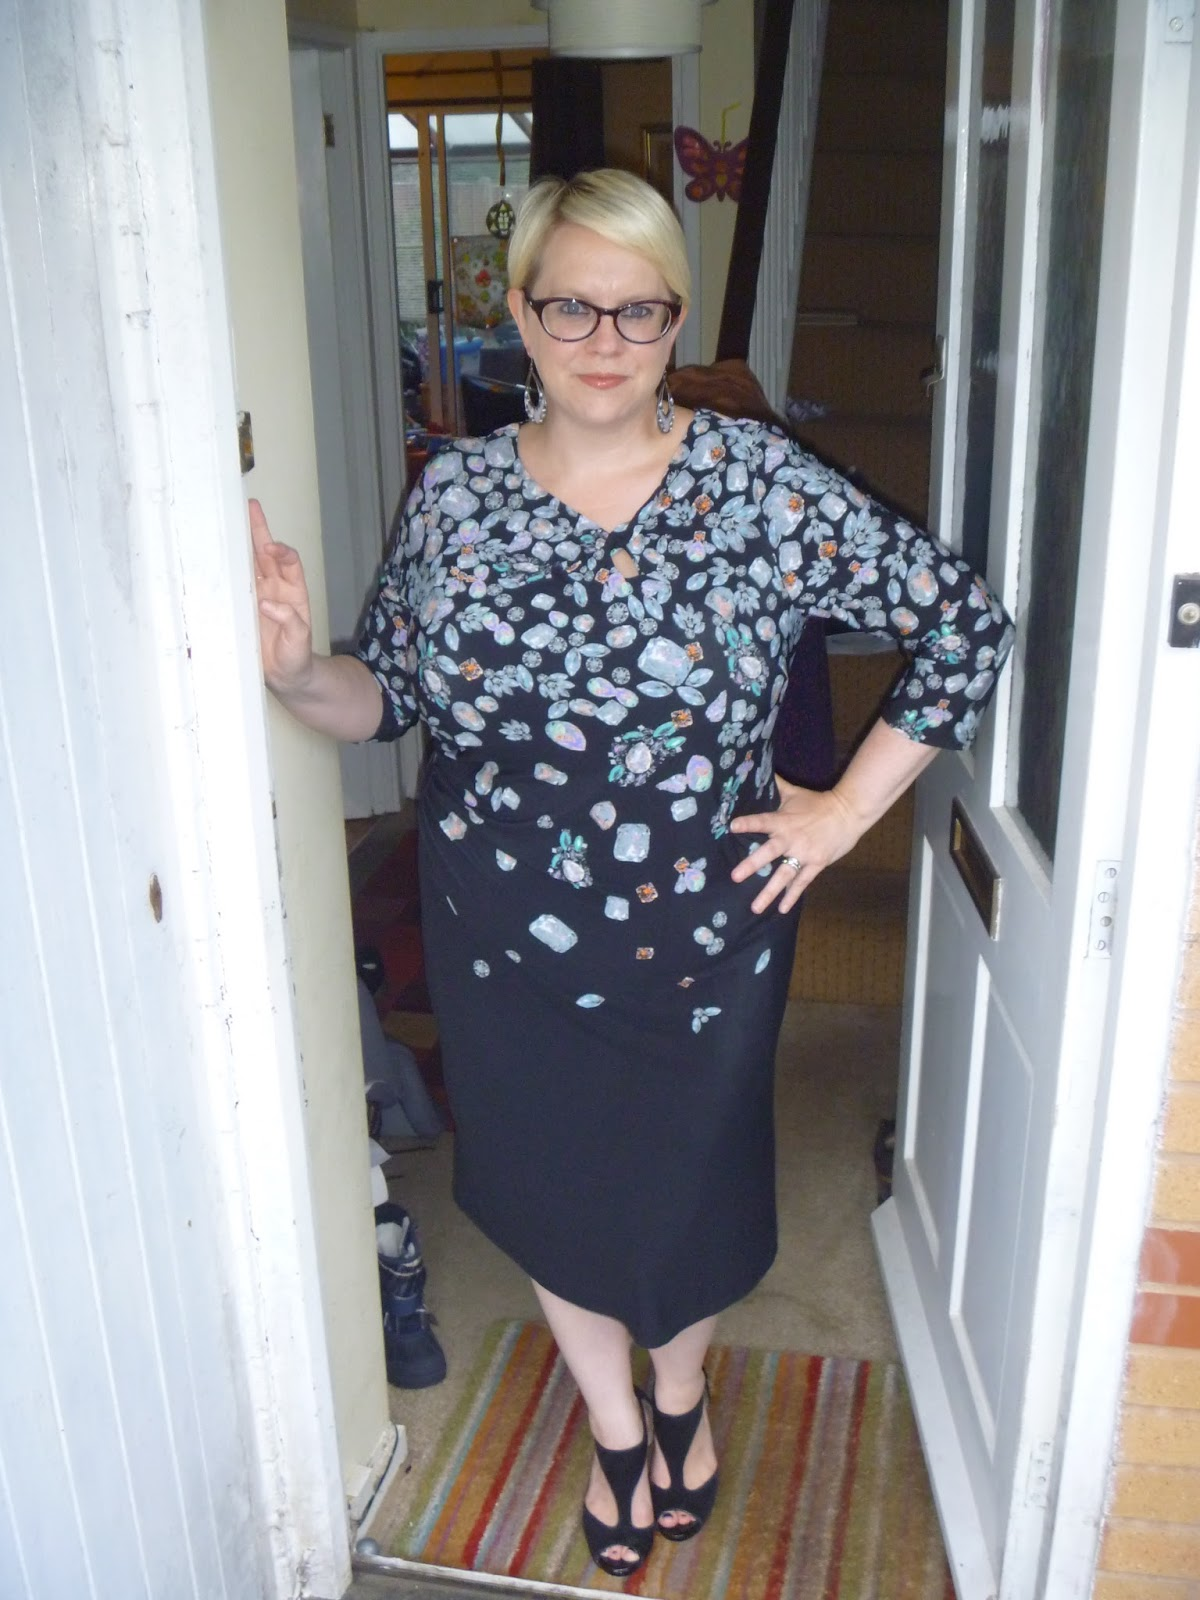 b3b4a93809e Having never worn anything by Anna Scholz before I took a chance and asked  to try a size 20